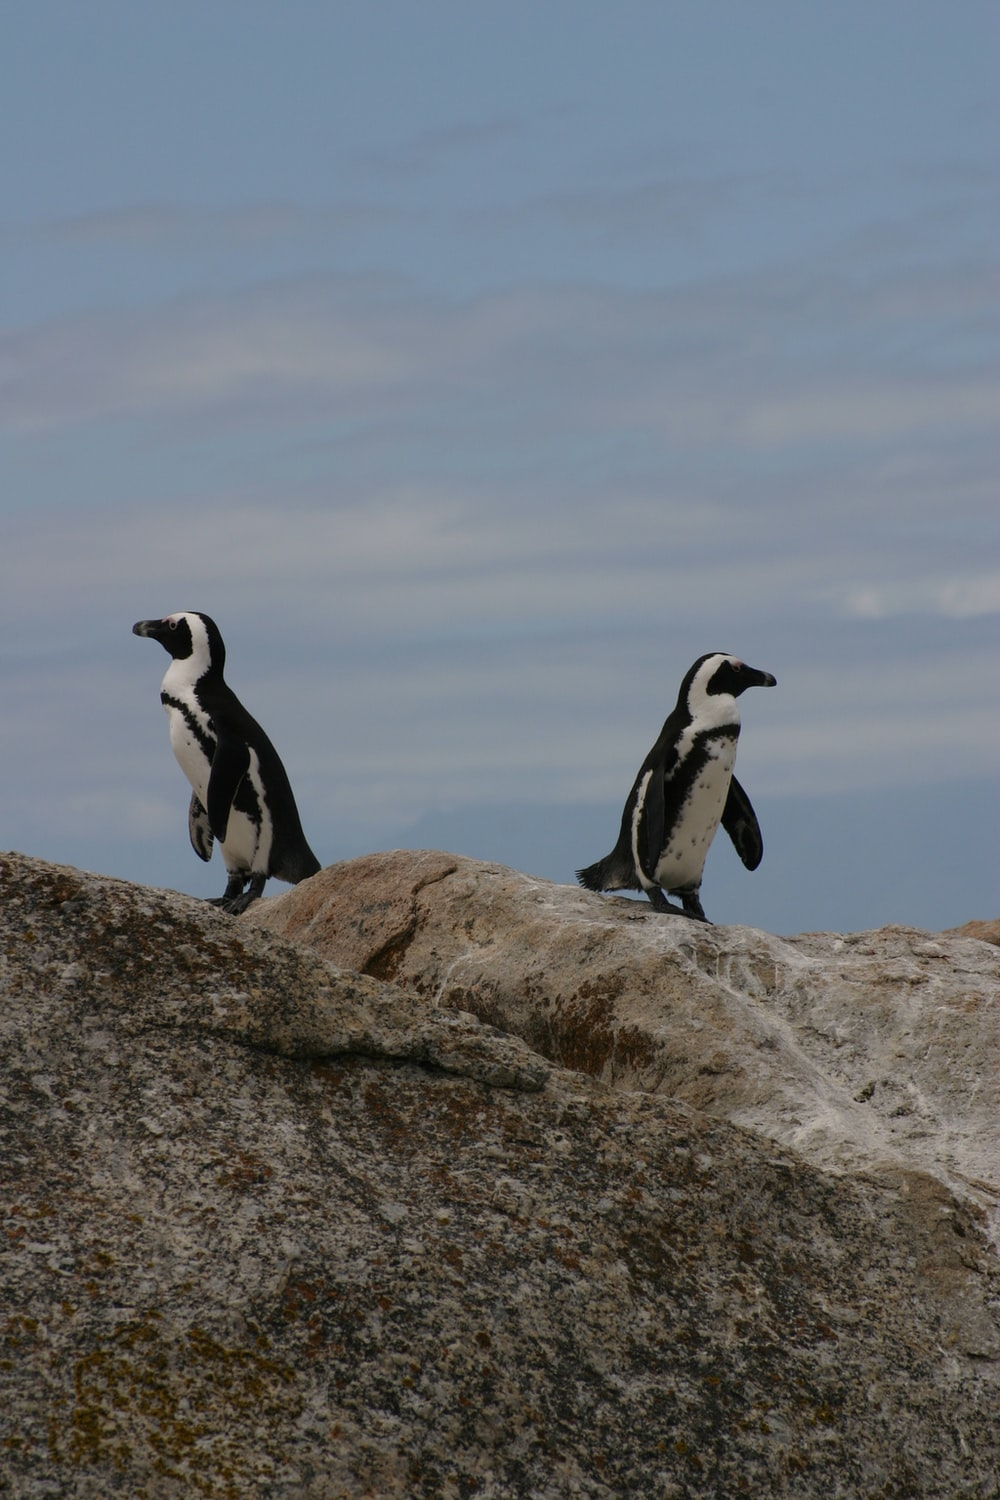 two penguins standing on rock